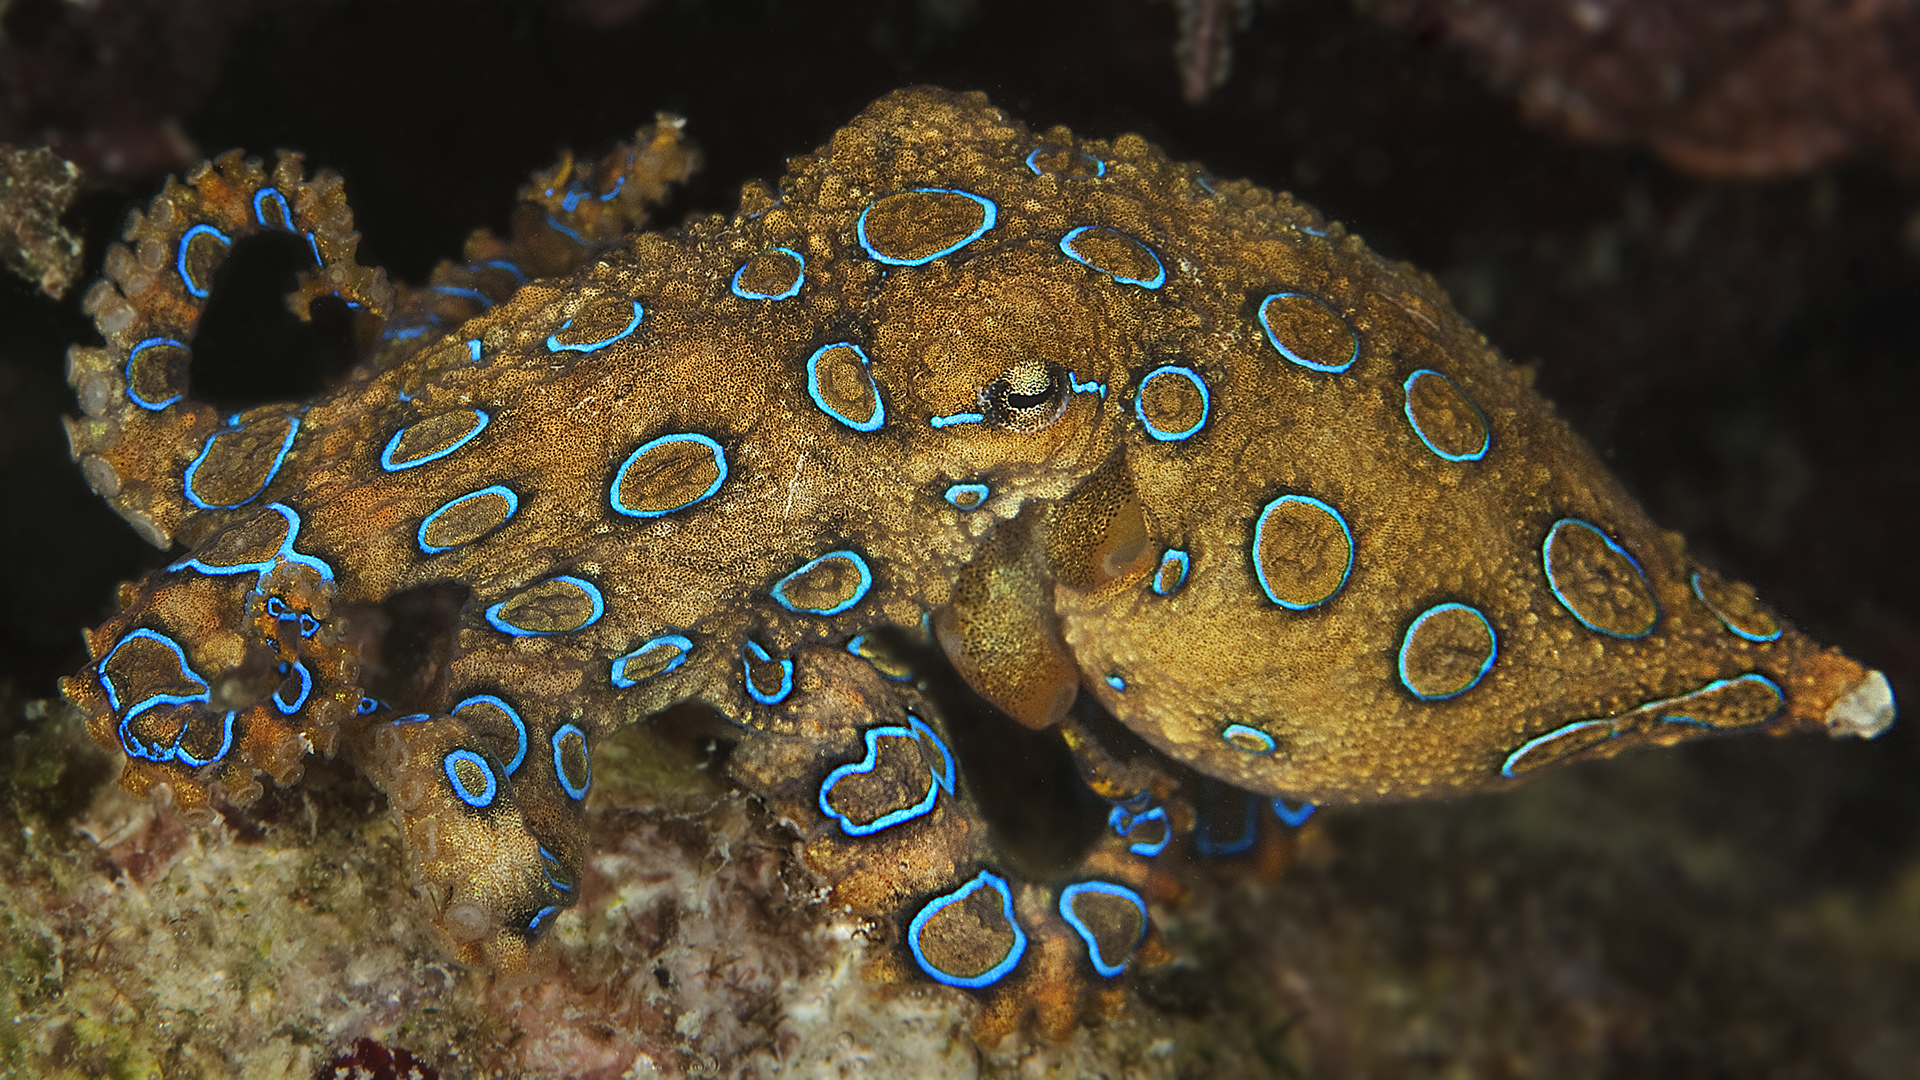 The highly venomous blue-ringed octopus.